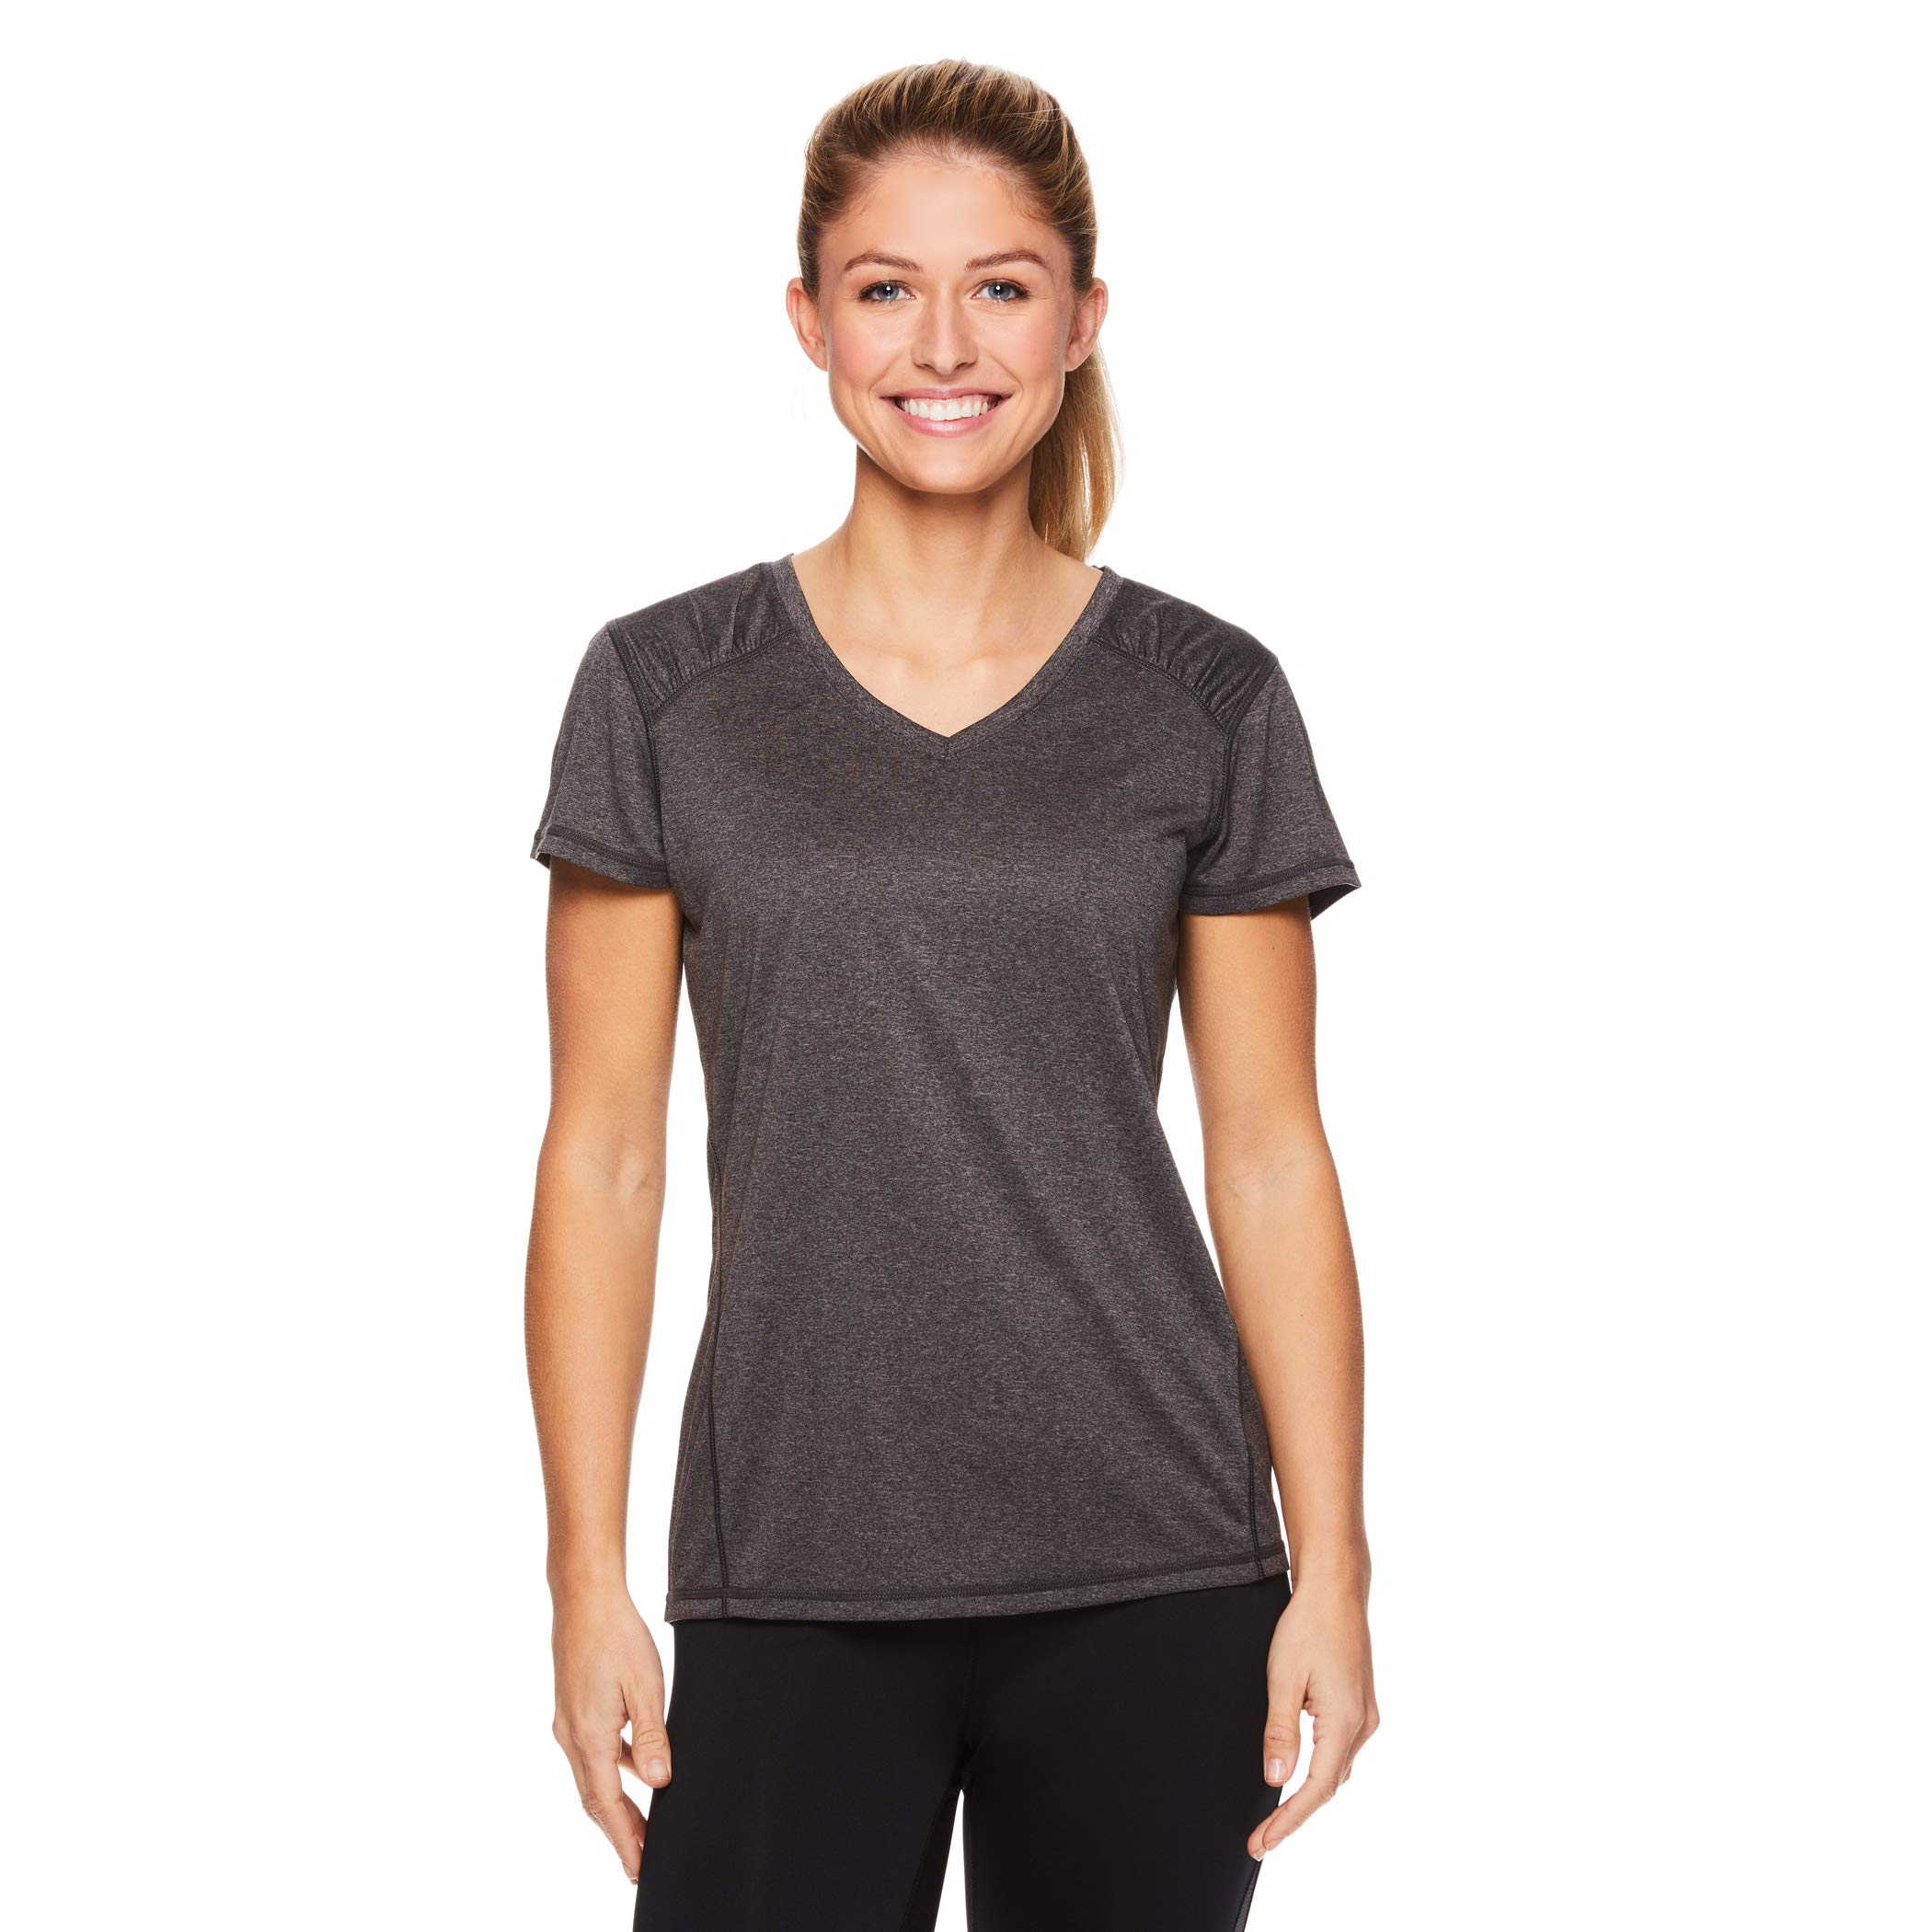 HEAD Women's Perfect Match Short Sleeve Workout T-Shirt - Performance V-Neck Activewear Top - Charcoal Heather, Small